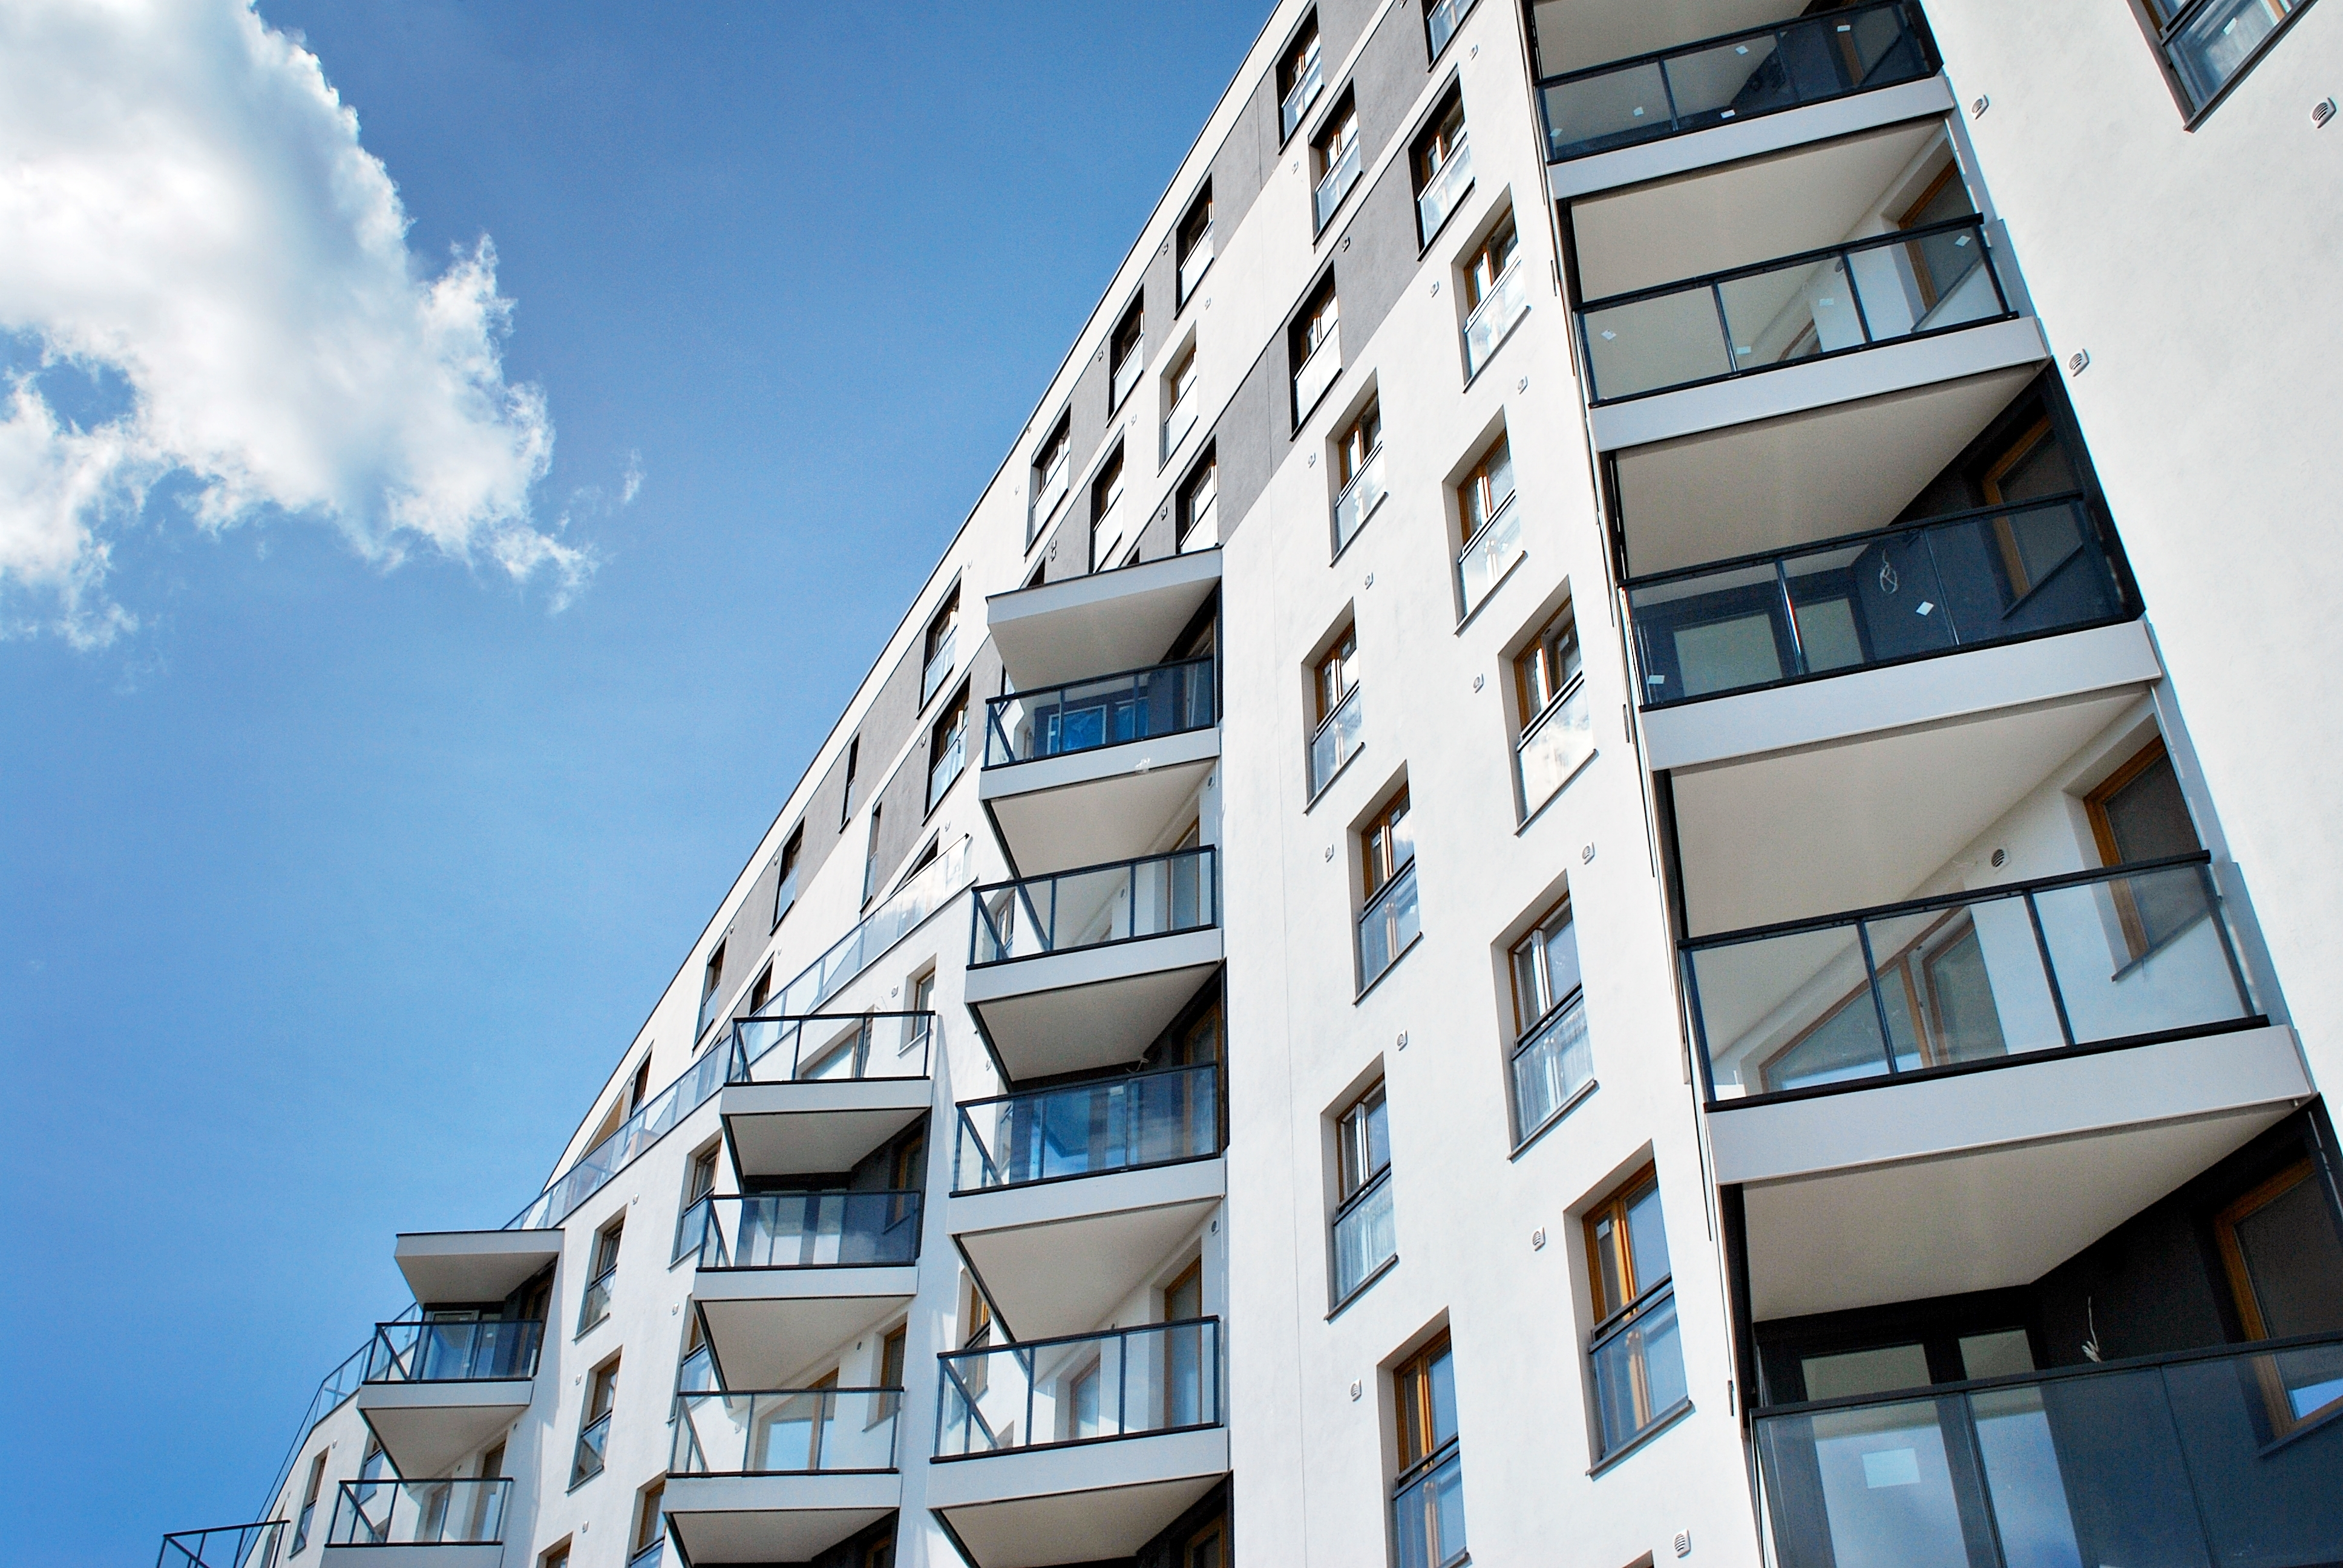 Thinking of Selling Your Commercial Property? Here are 5 Improvements That Can Help Increase Your Return